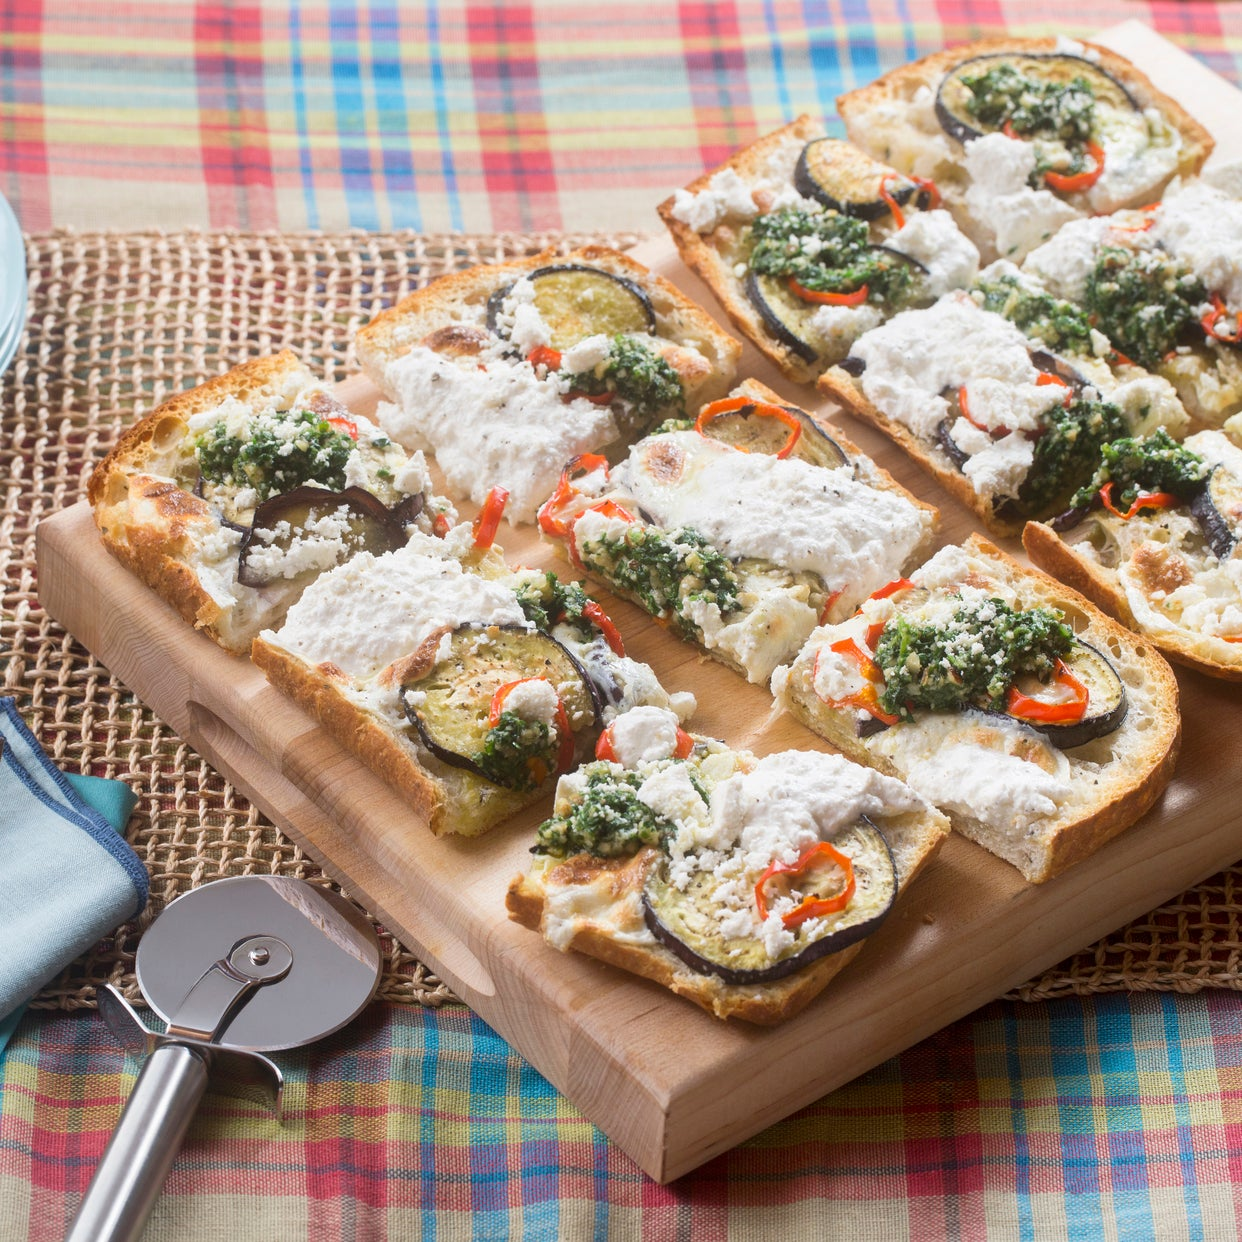 Eggplant & Summer Pepper Focaccia Pizza with Arugula-Parsley Pesto & Lemon Ricotta